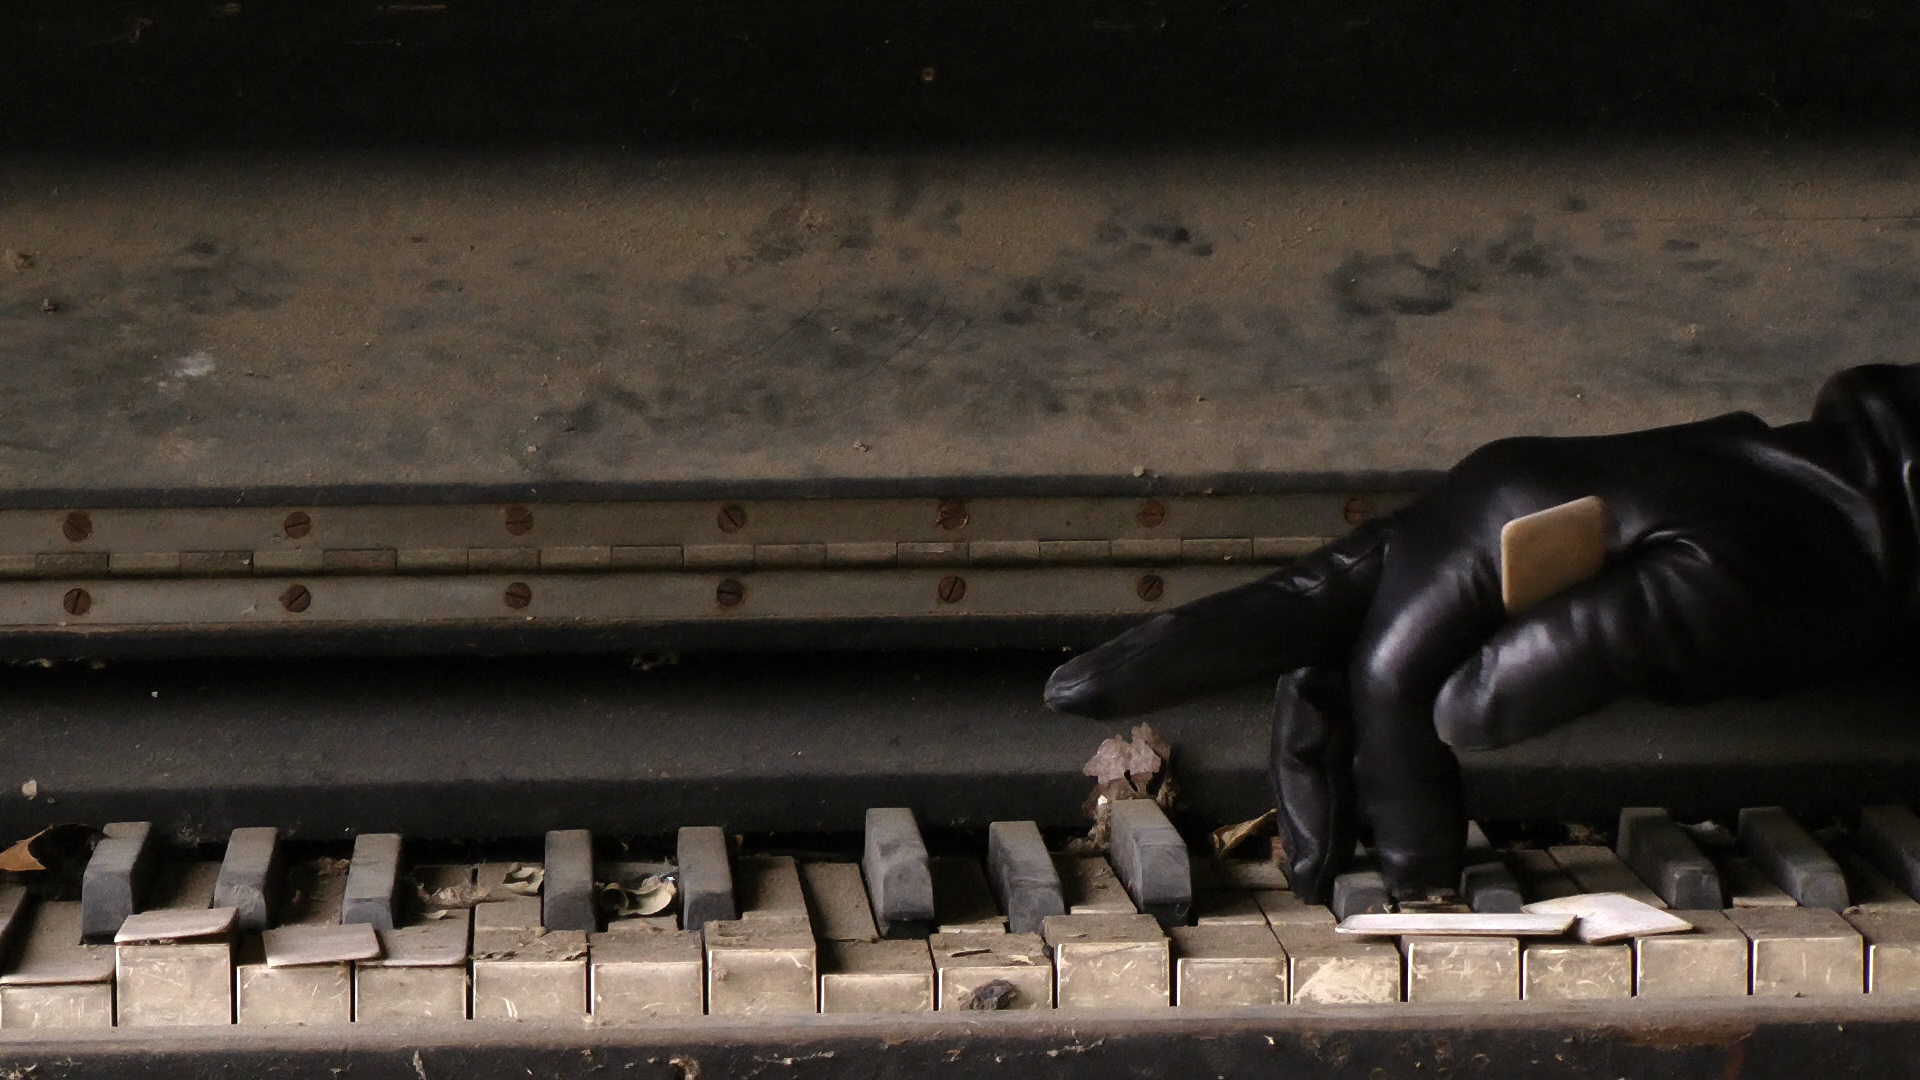 AH Gloved hand Chip falls Piano 000059;14.png